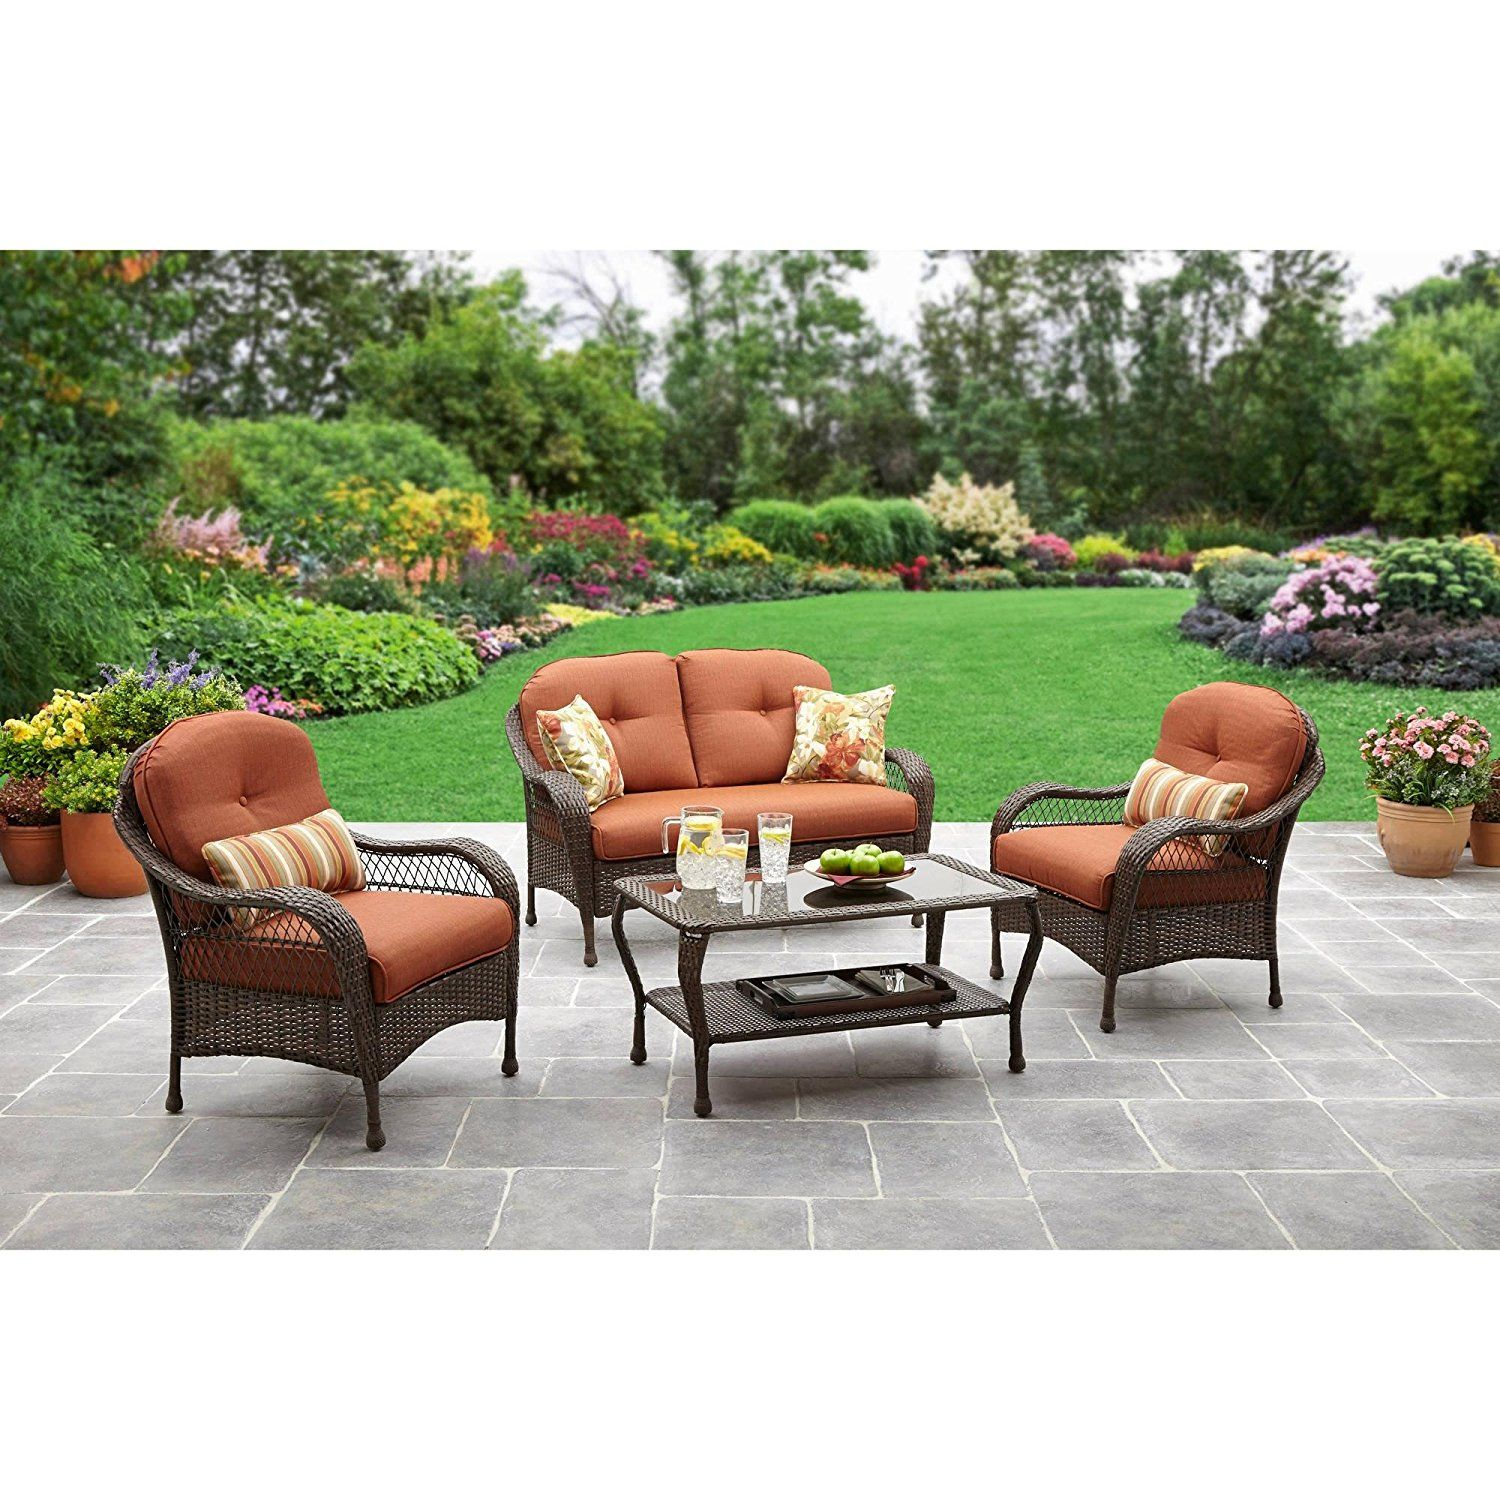 Ordinaire Amazon.com : Patio All Weather Outdoor Furniture Set That Seats 4  Comfortably For Enjoying